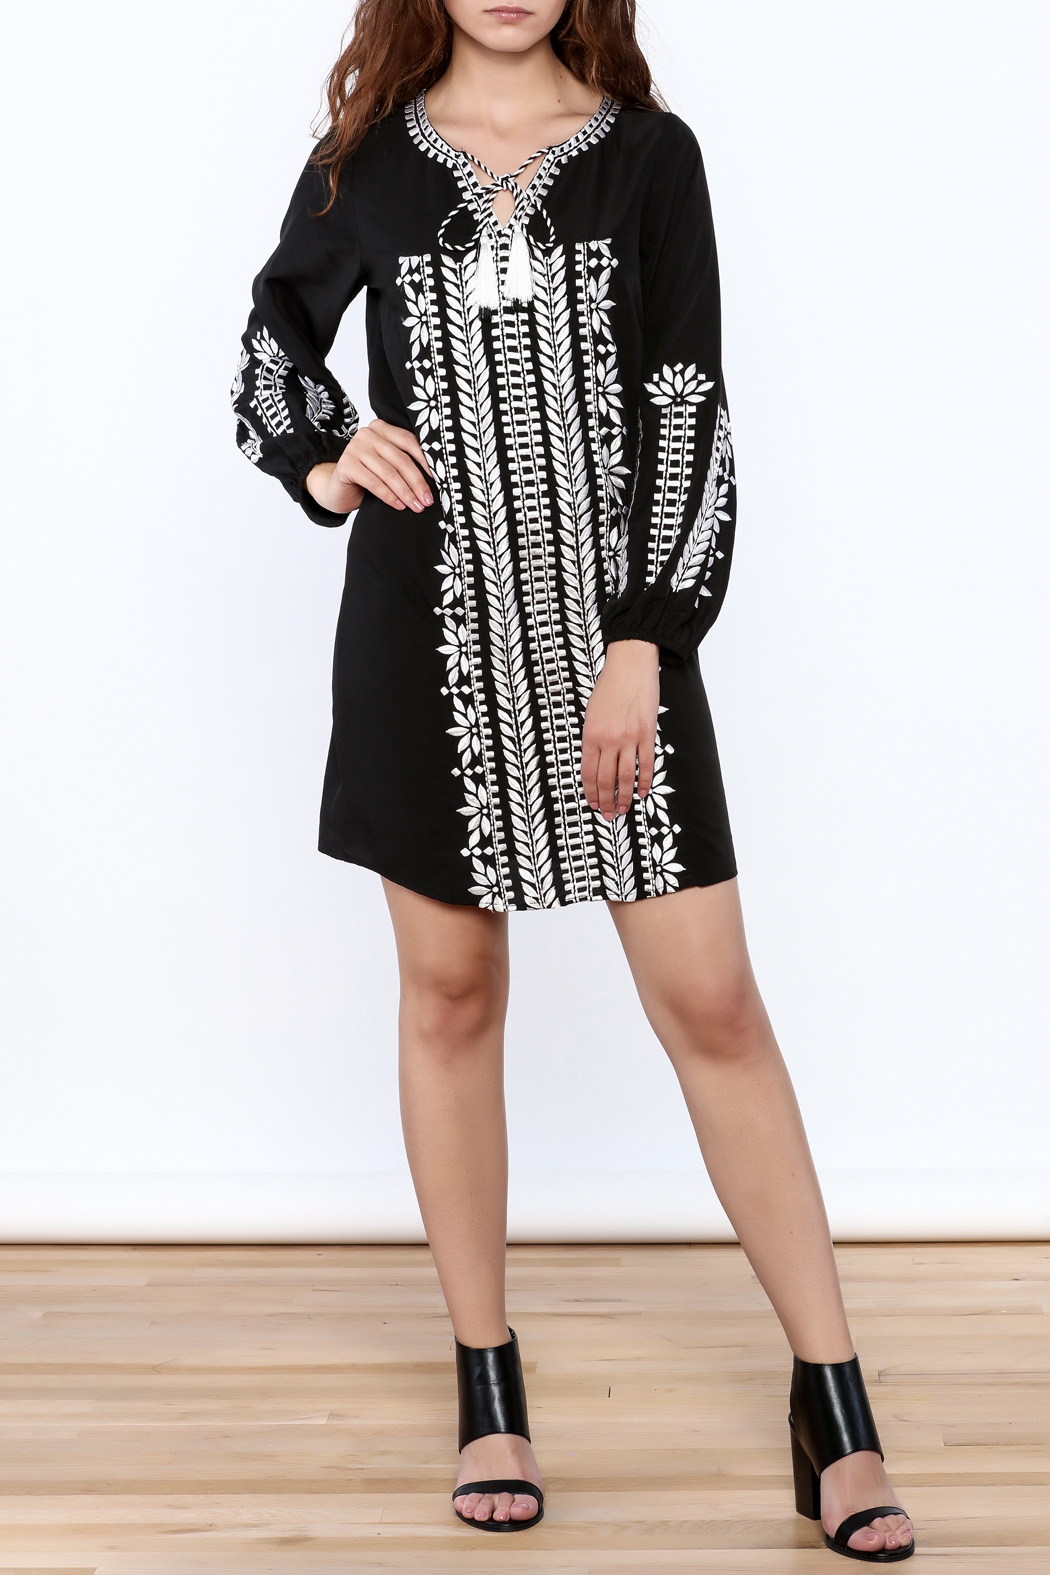 KAS New York Trudy Embroidered Dress - Front Full Image